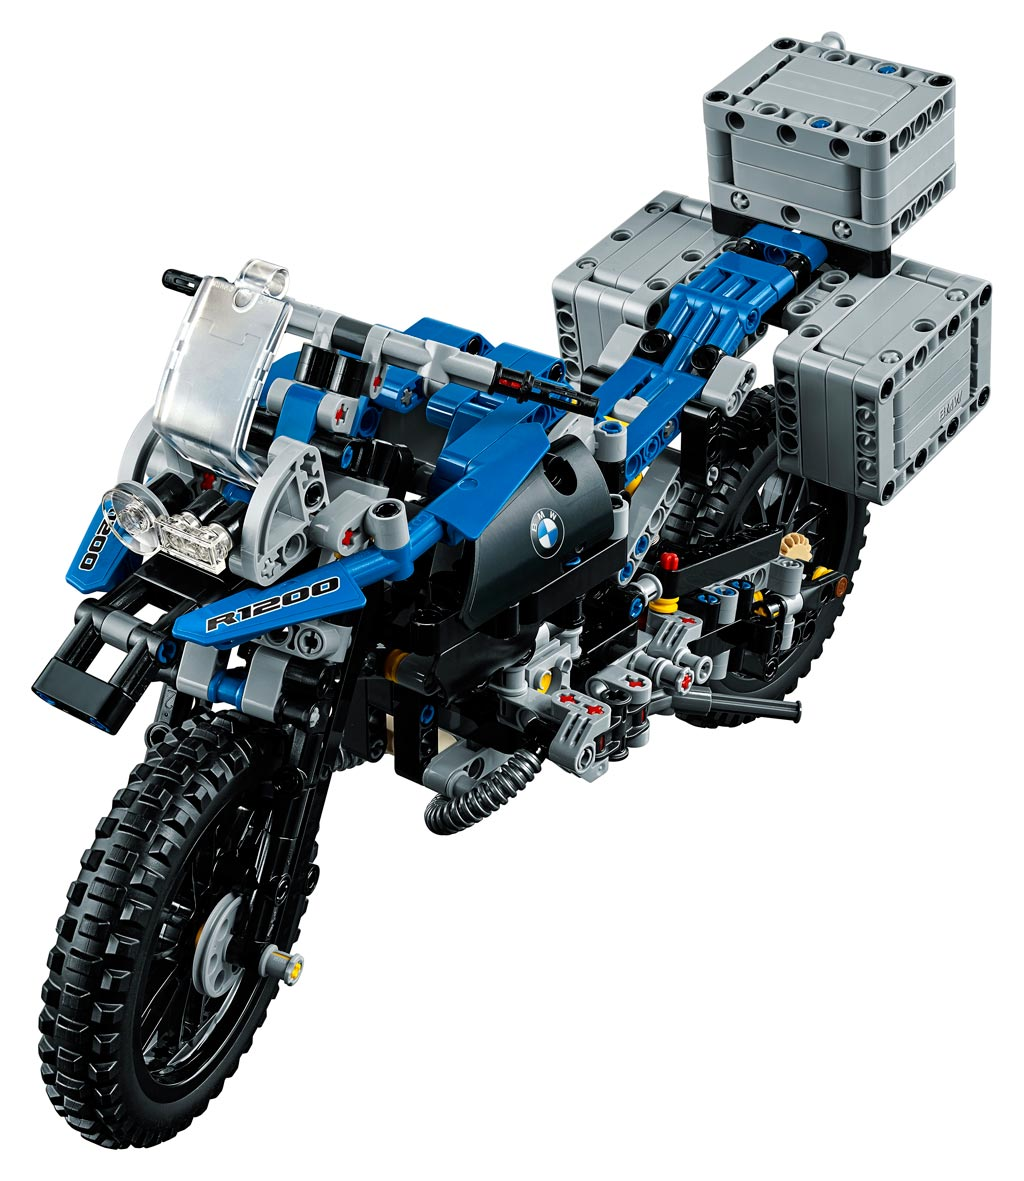 vorgestellt lego technic bmw r 1200 gs adventure 42063 erscheint am 1 januar 2017 zusammengebaut. Black Bedroom Furniture Sets. Home Design Ideas